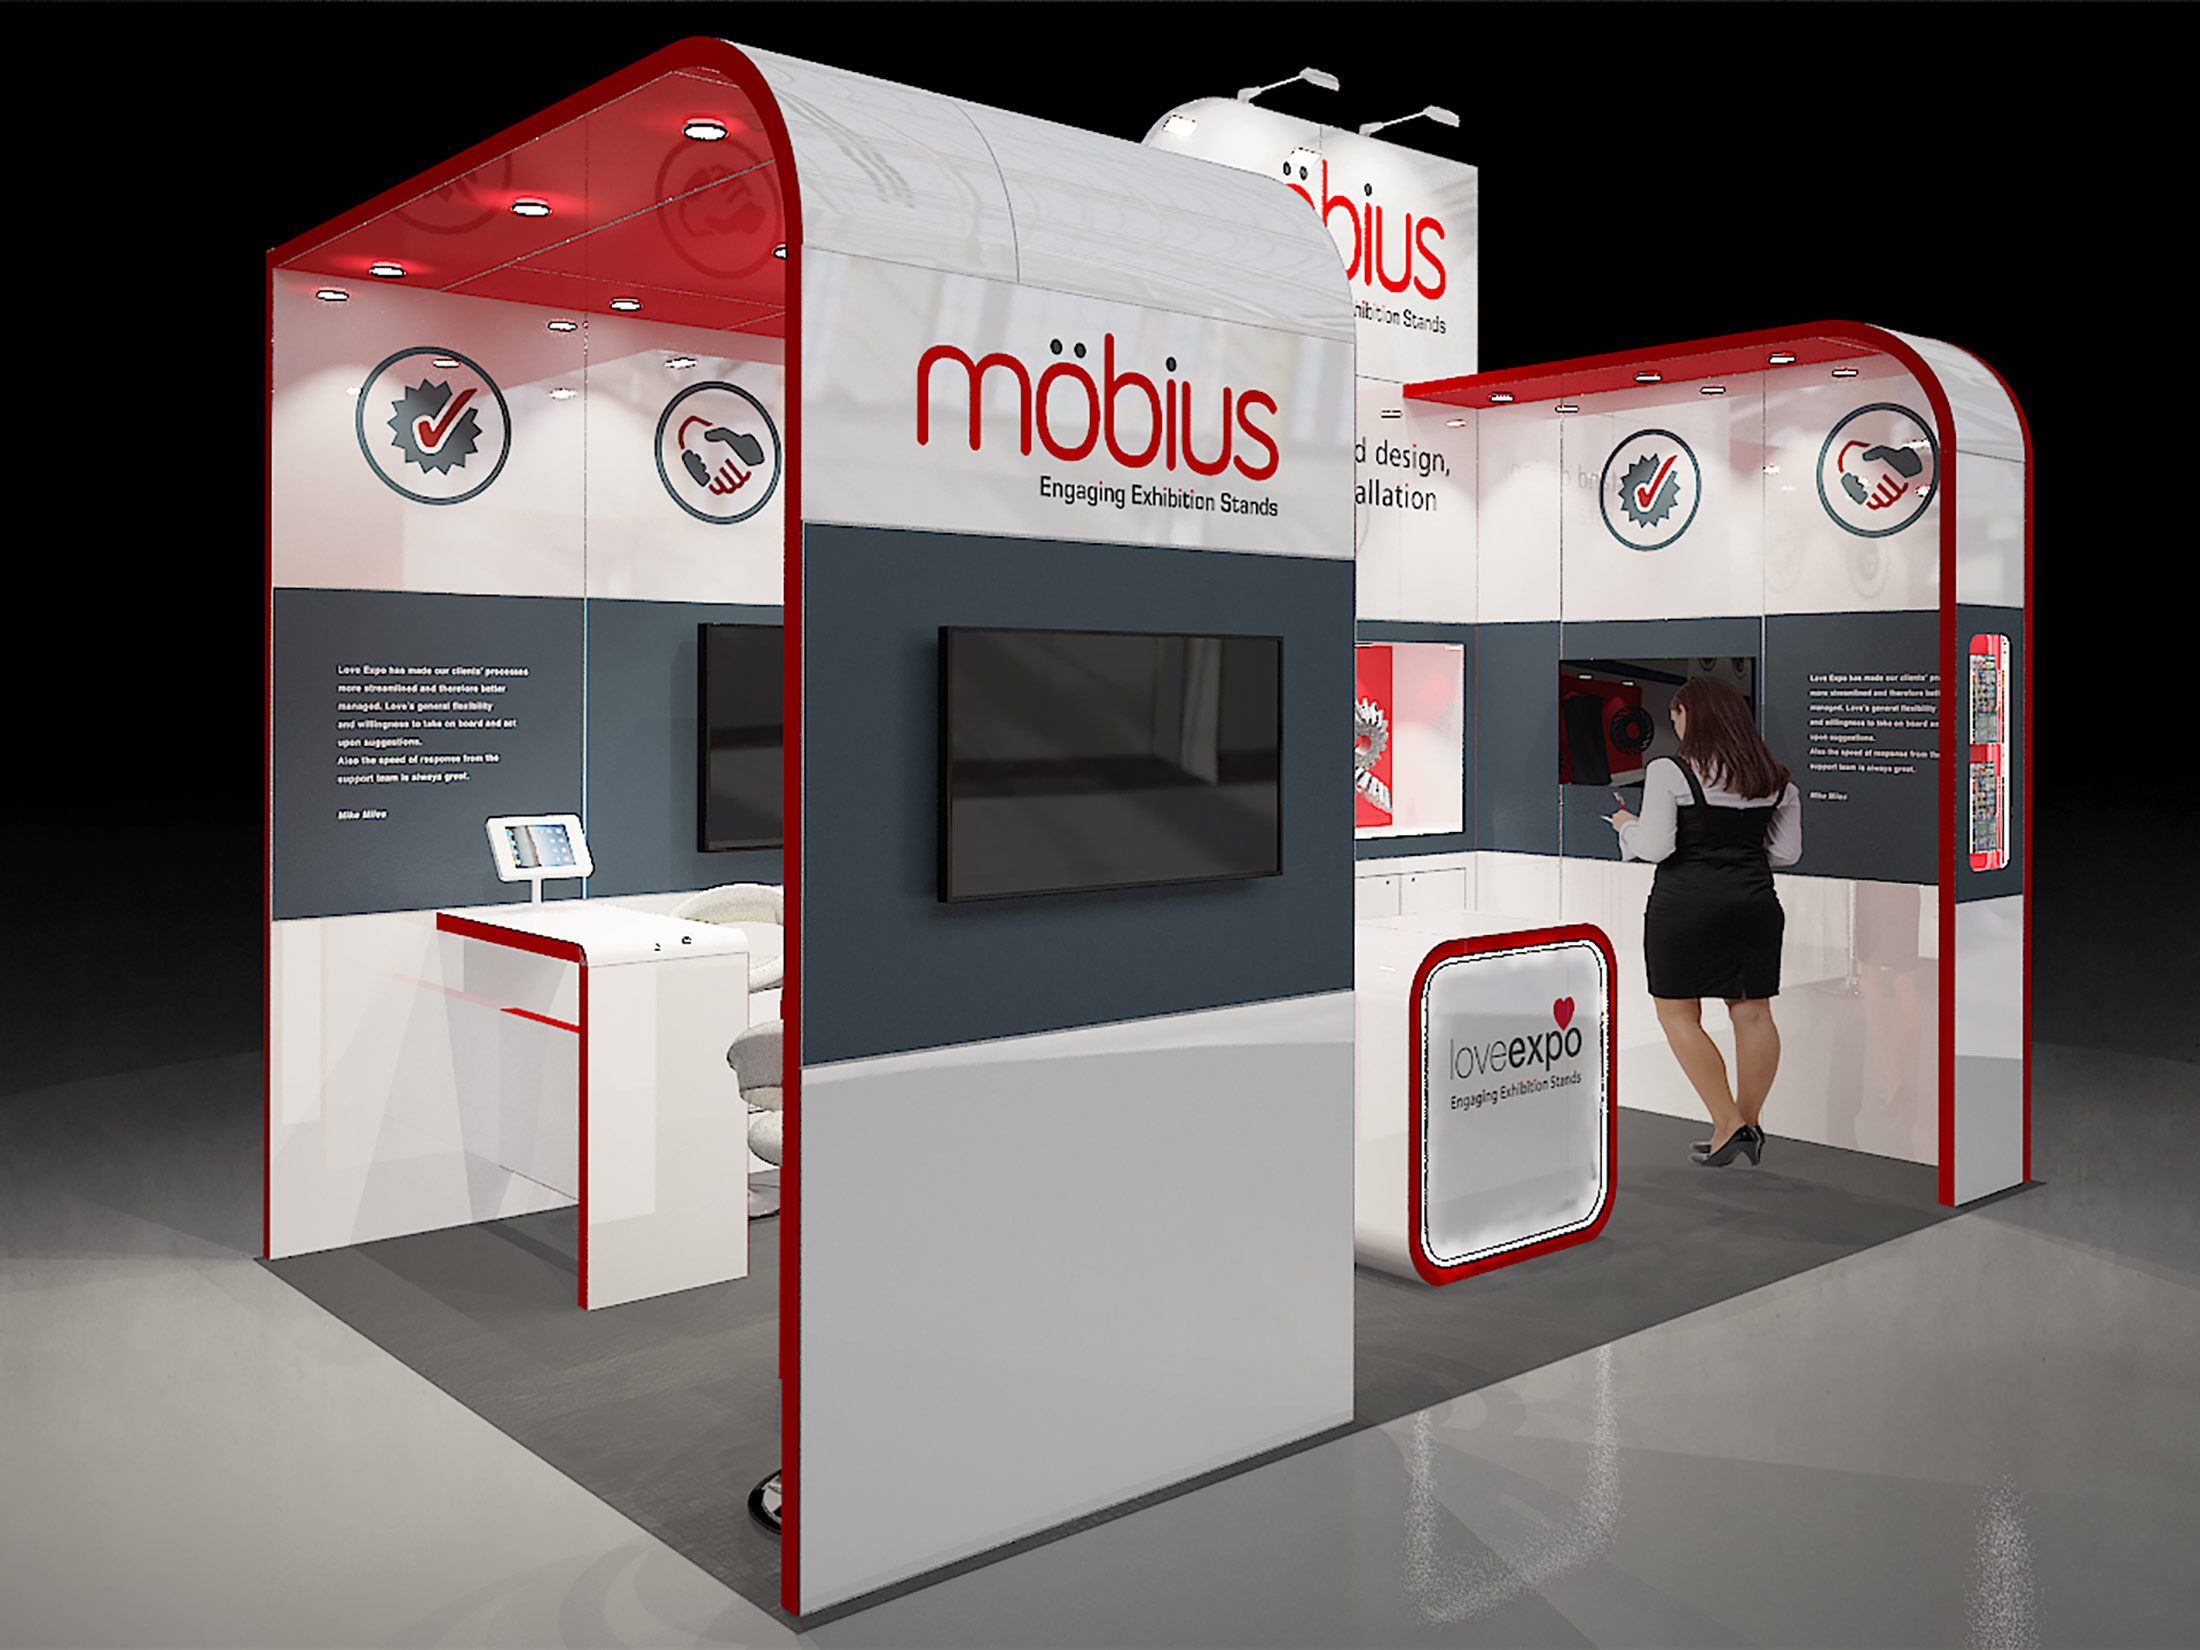 Exhibition Stand Risk Assessment Form : Mob love expo